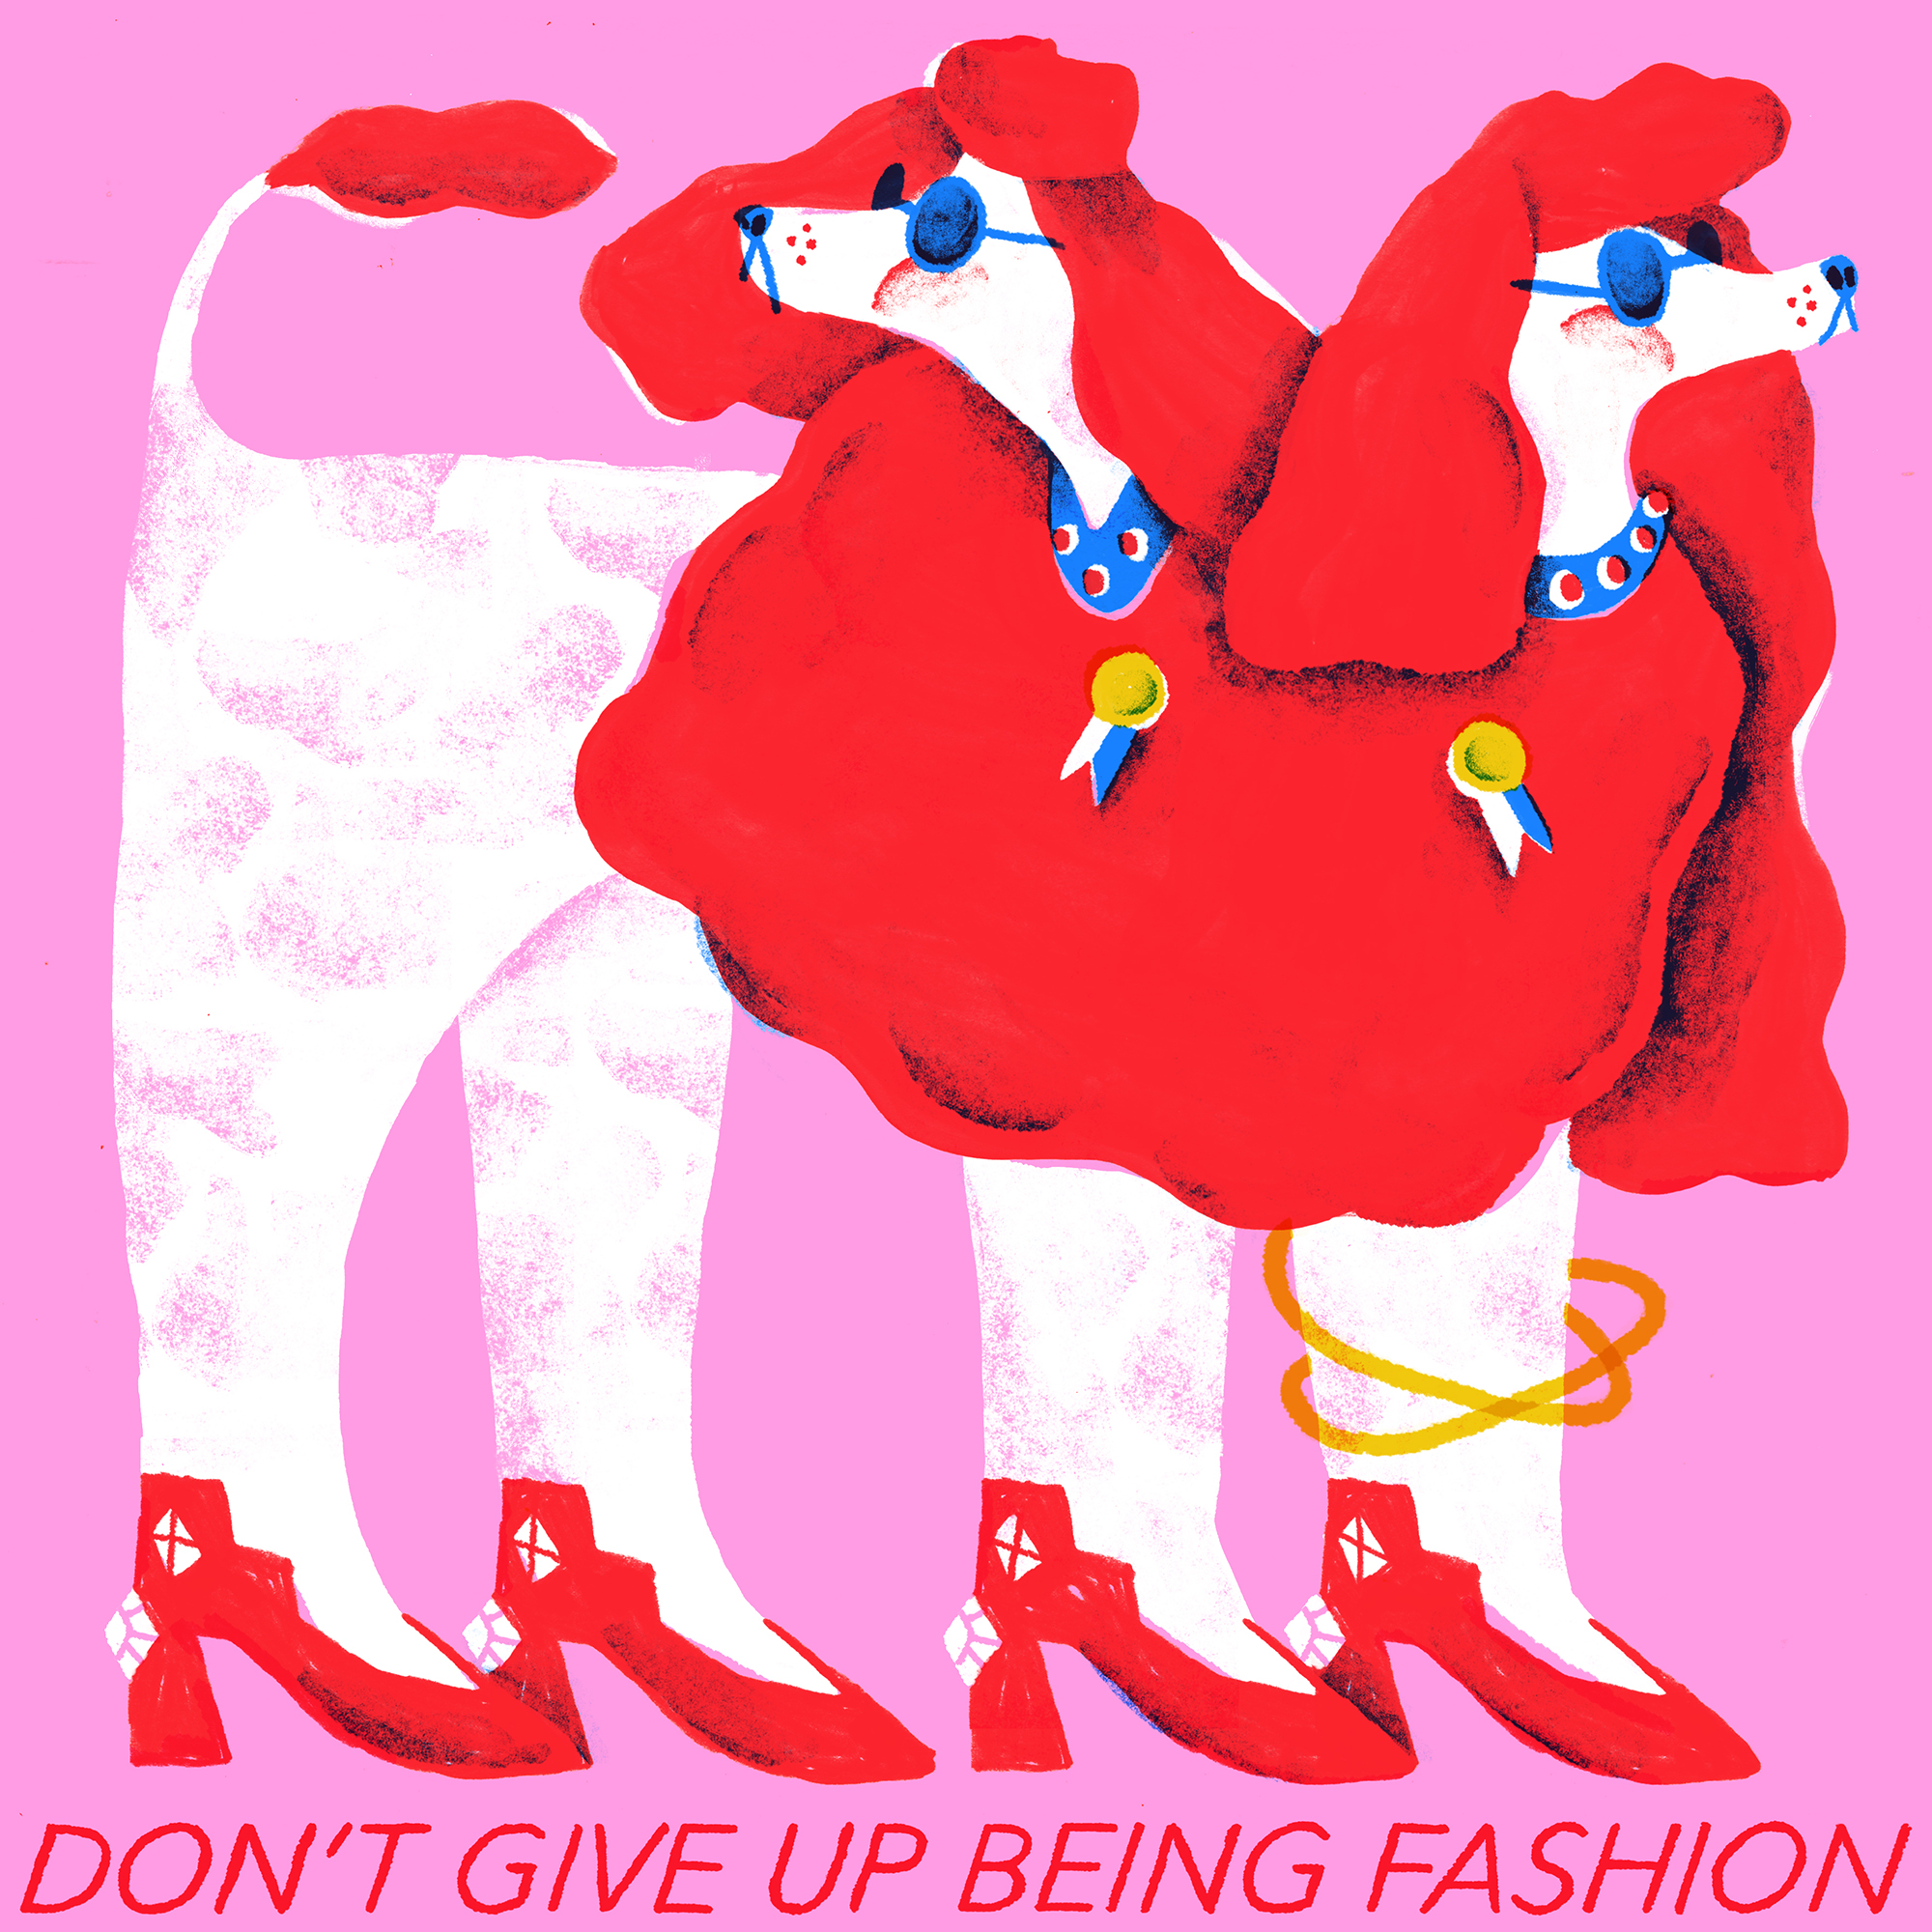 Alice Piaggio, Don't give up being fashion